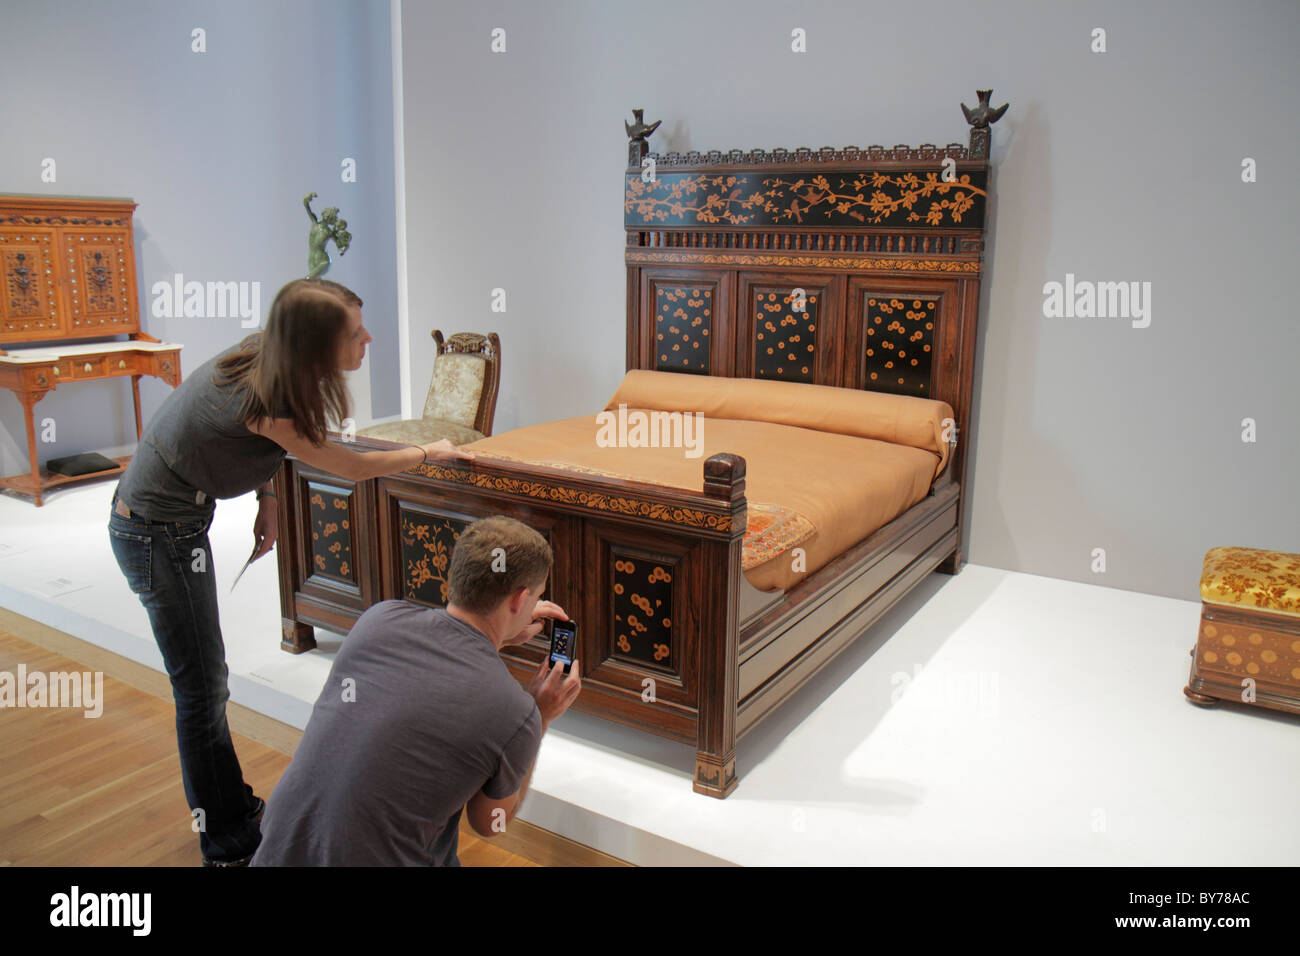 Atlanta Georgia High Museum Of Art Gallery Collection Exhibition Artwork  Furniture Carved Bed Design Man Woman Student Taking Pi